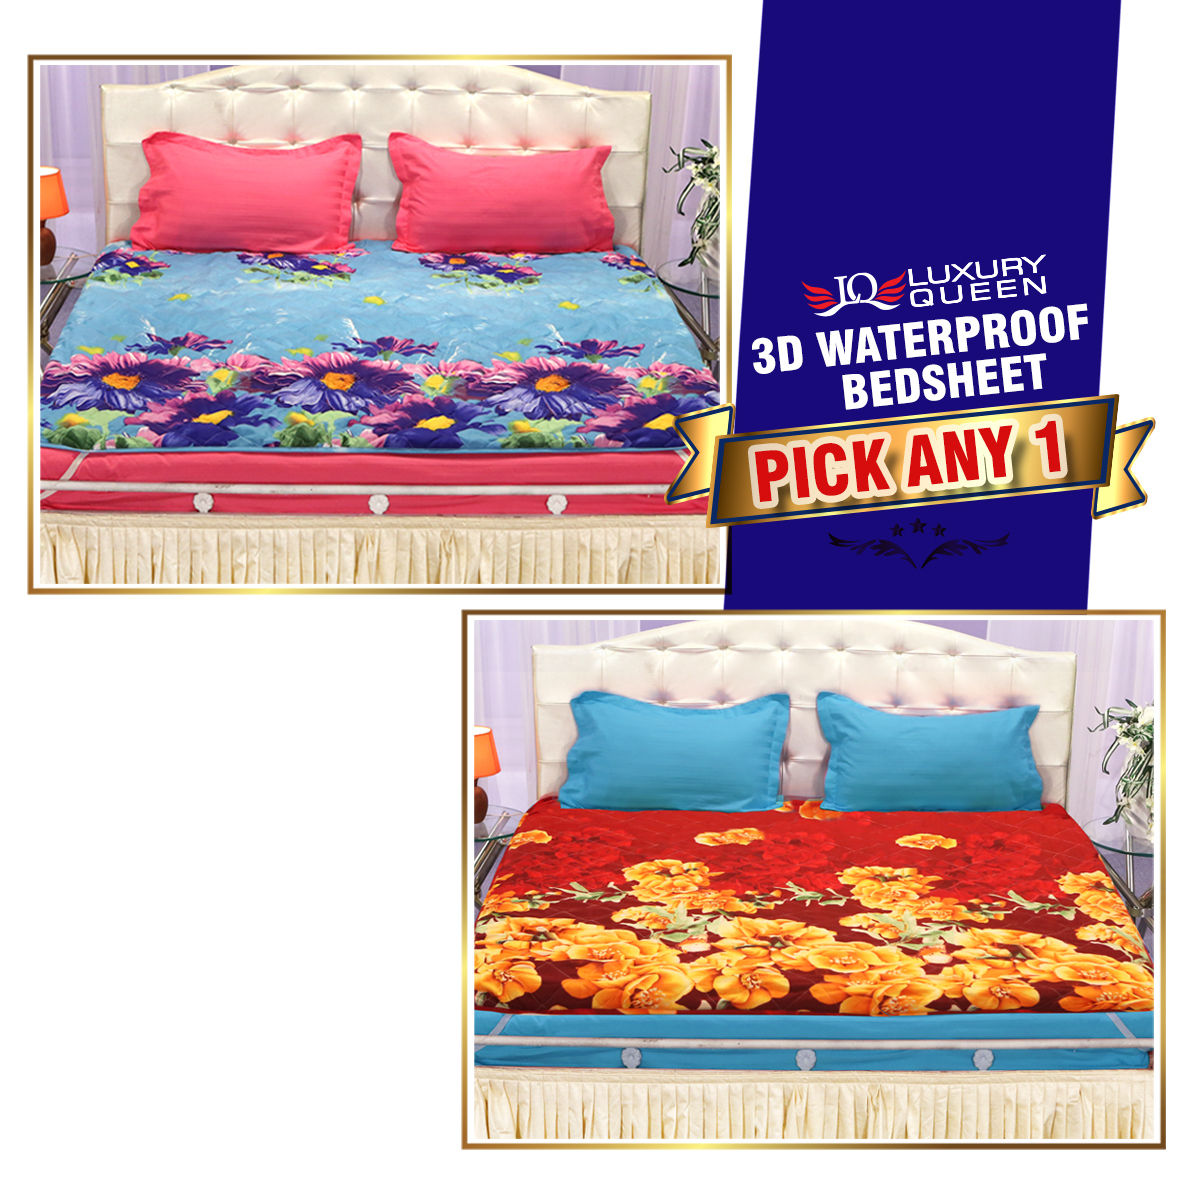 Buy 3d Waterproof Bedsheet Pick Any One Online At Best